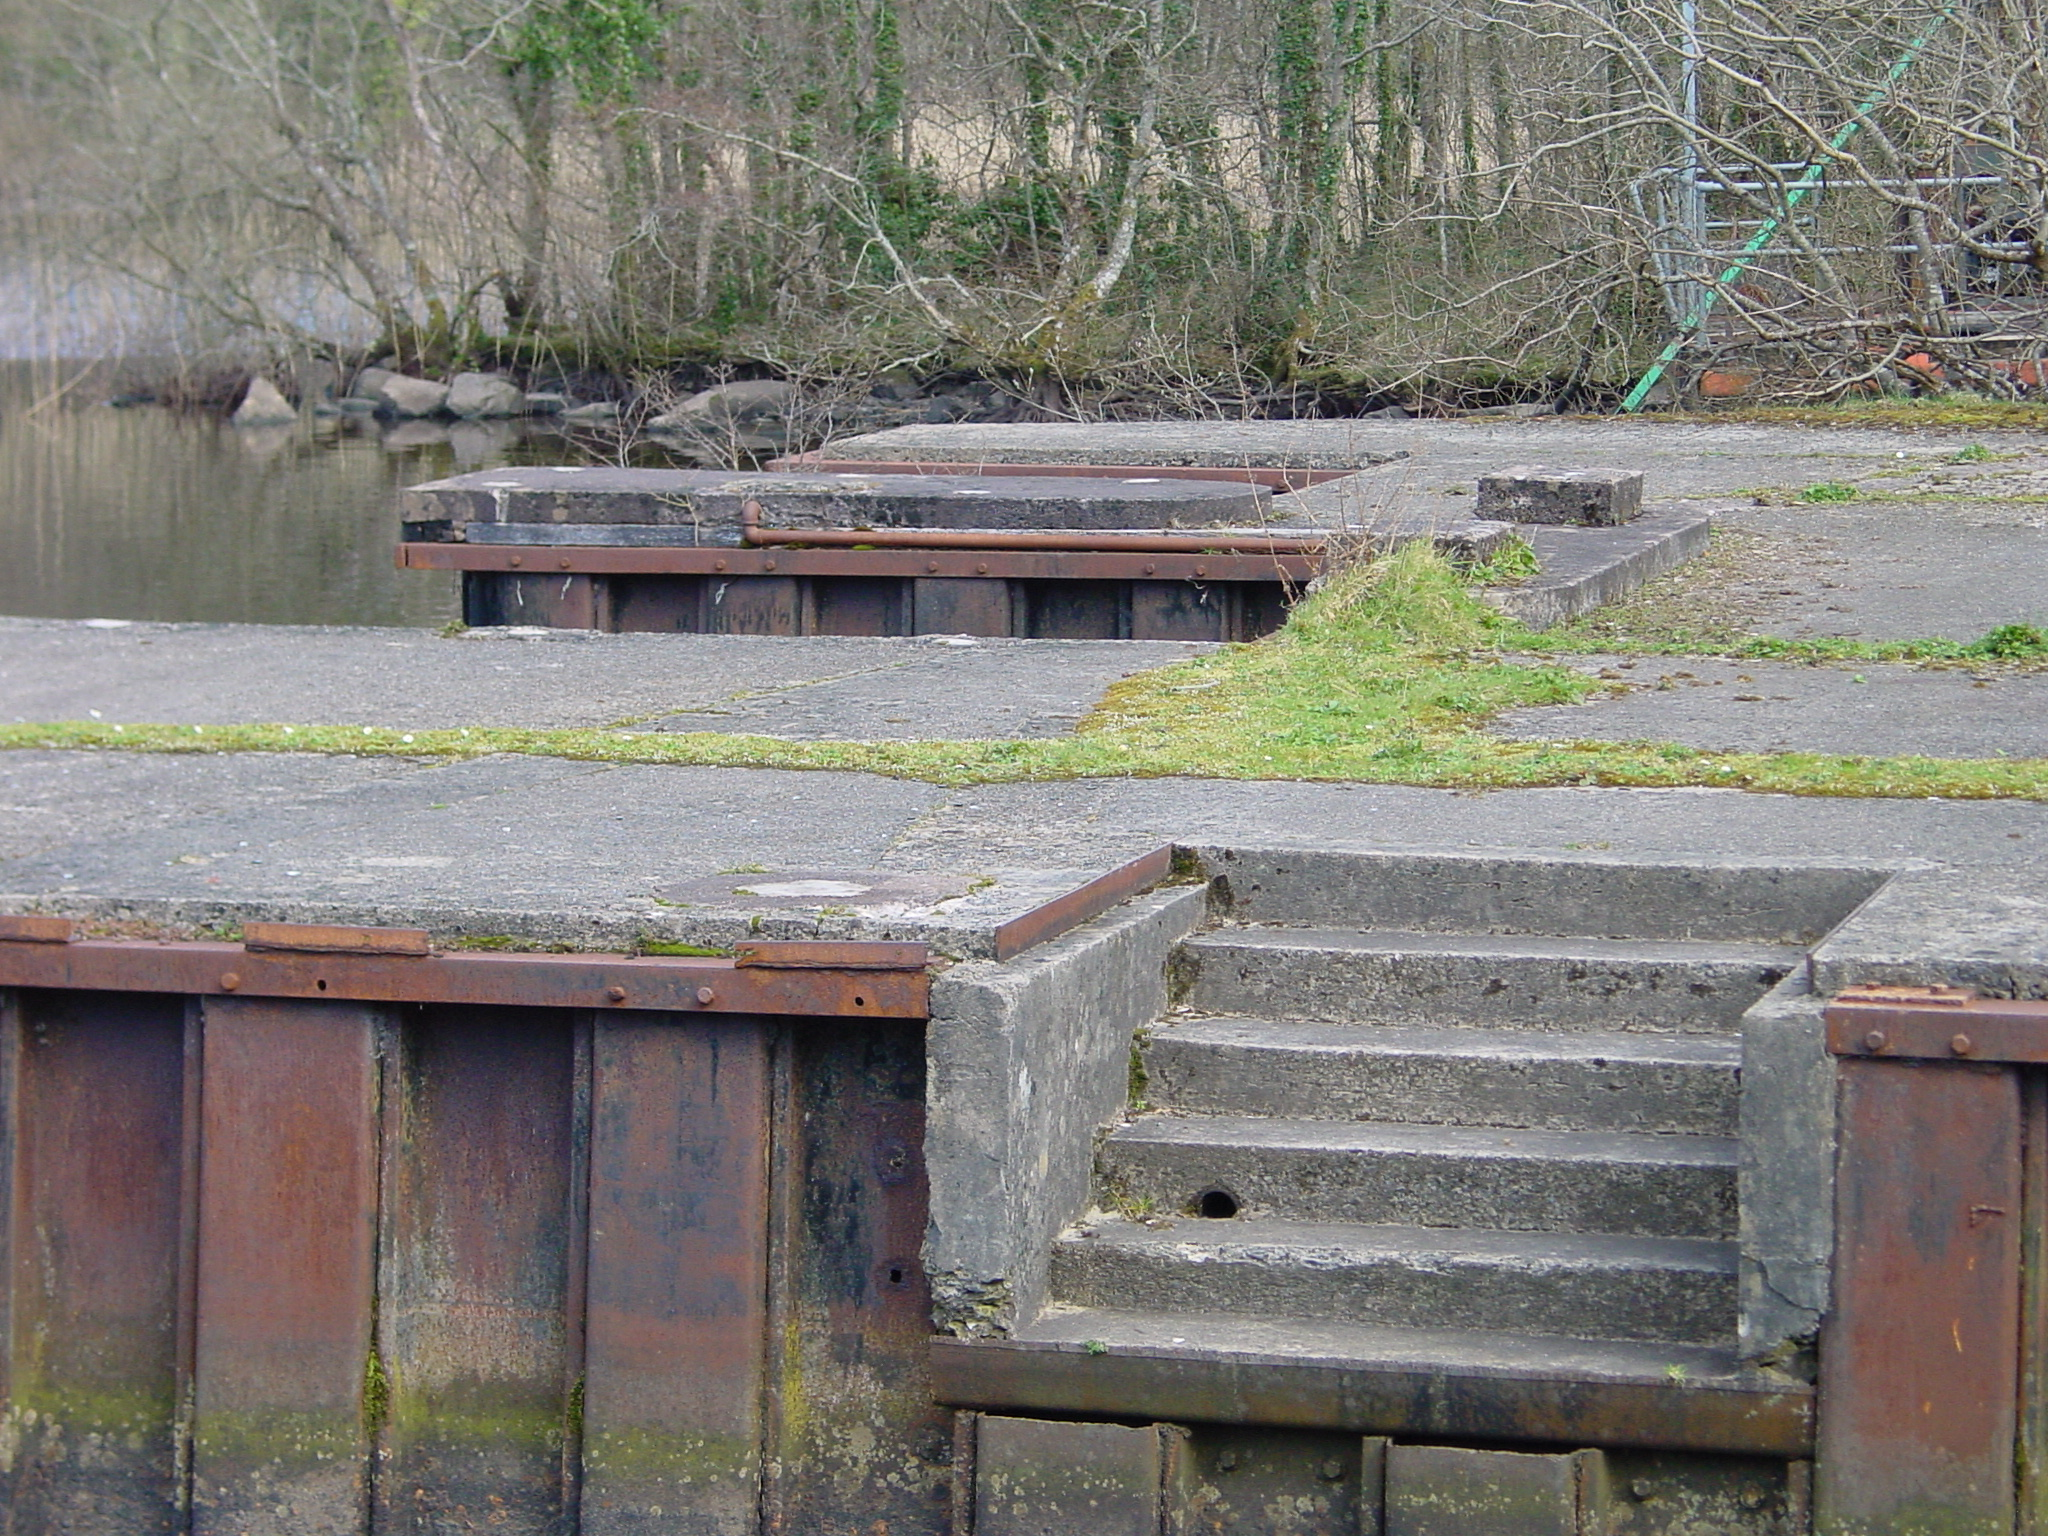 Some details of the flying-boat dock